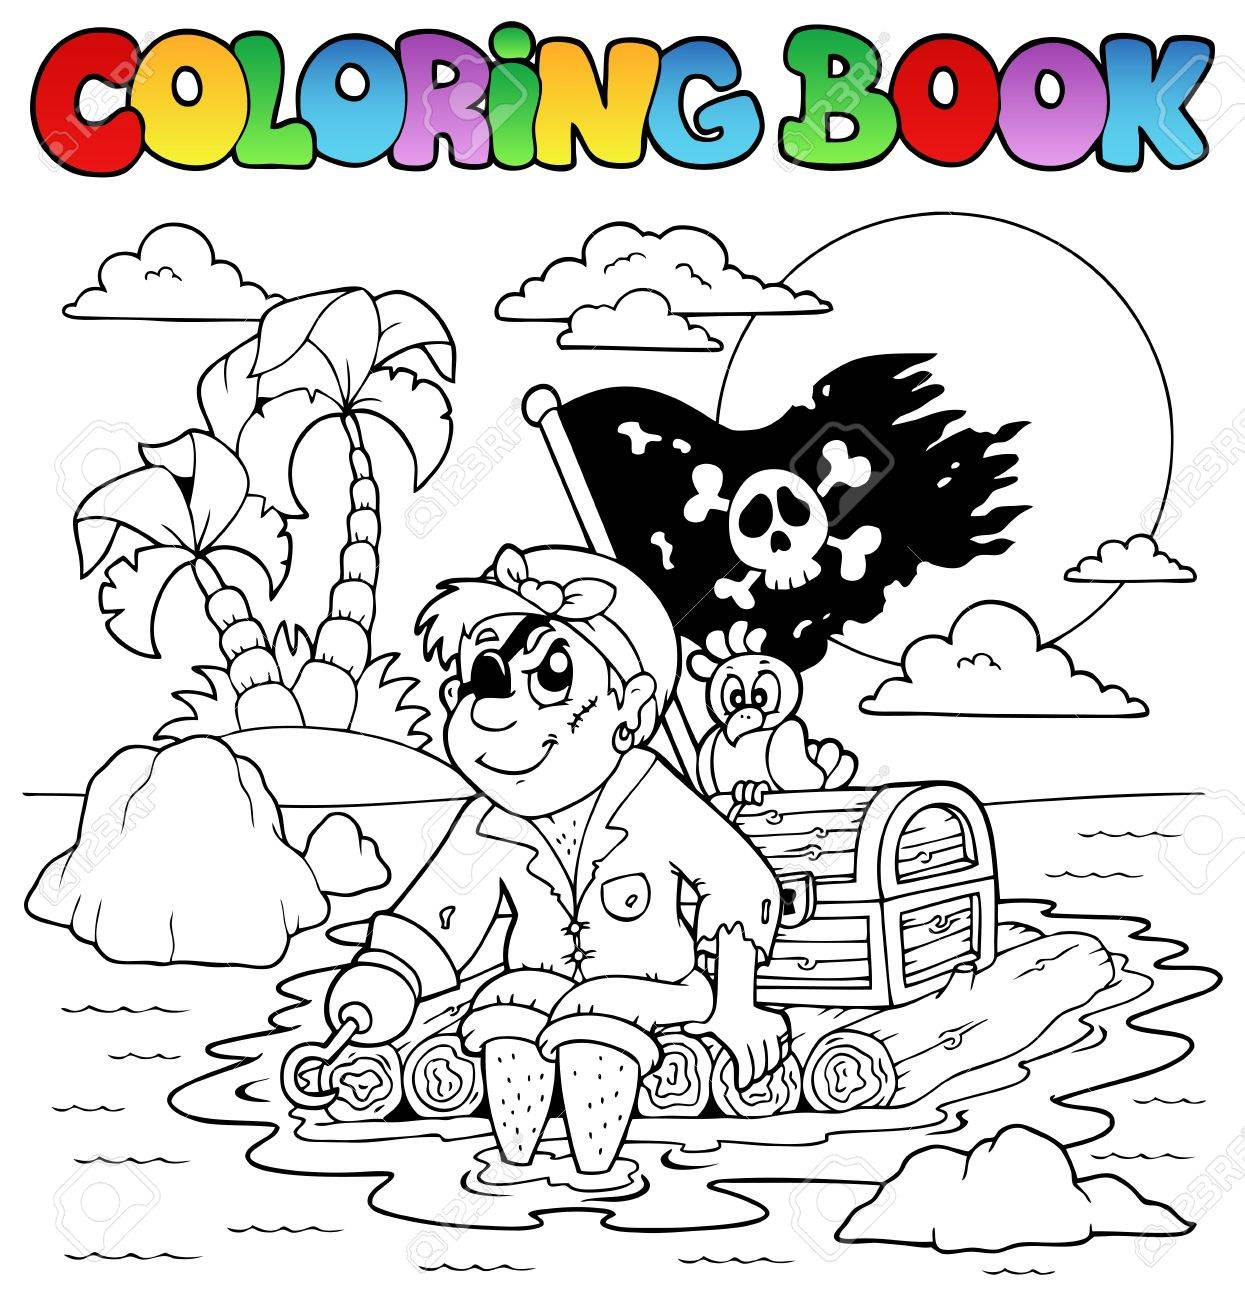 Coloring book with pirate topic 2 - vector illustration Stock Vector - 13665309